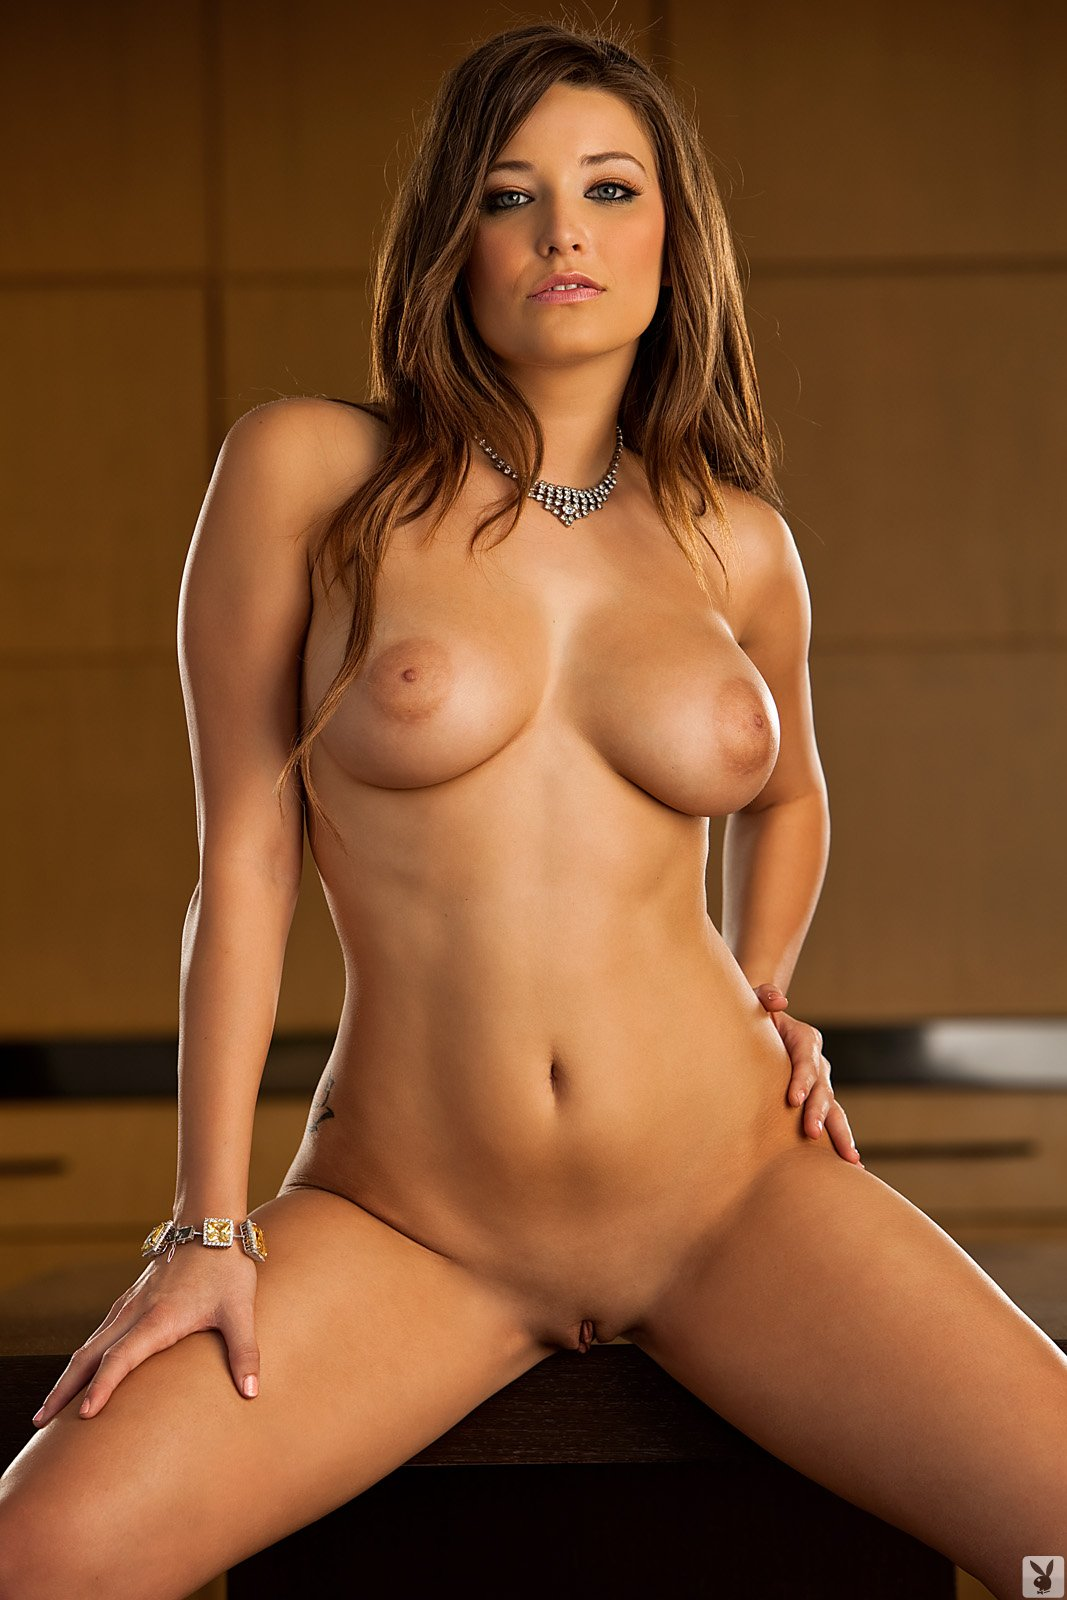 Naked veronica hot point. Absolutely casual